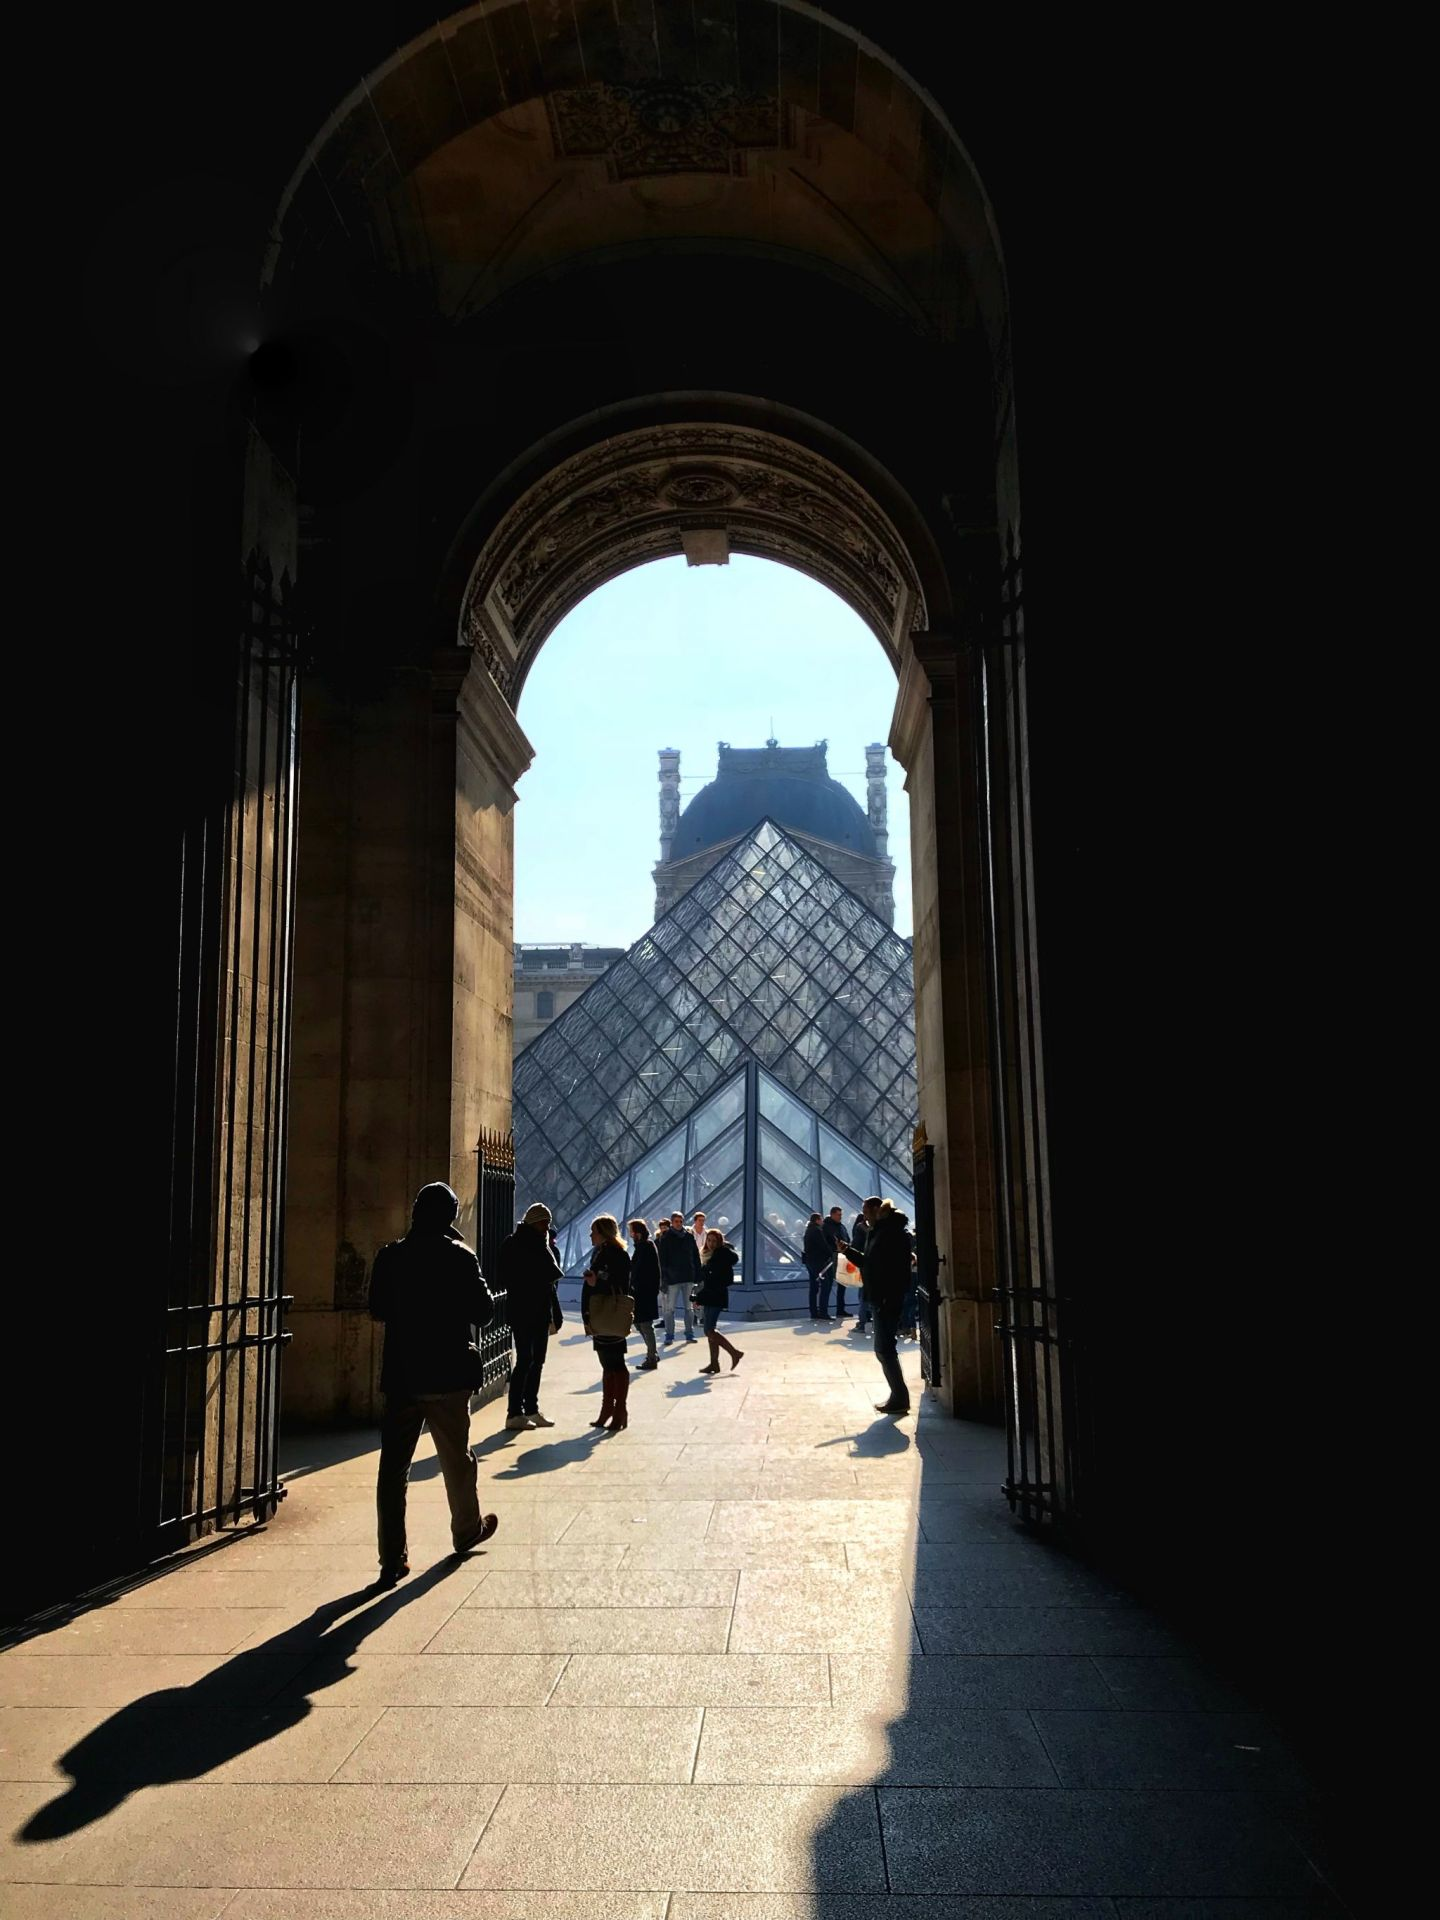 glimpsing and seeing the Louvre for the first time